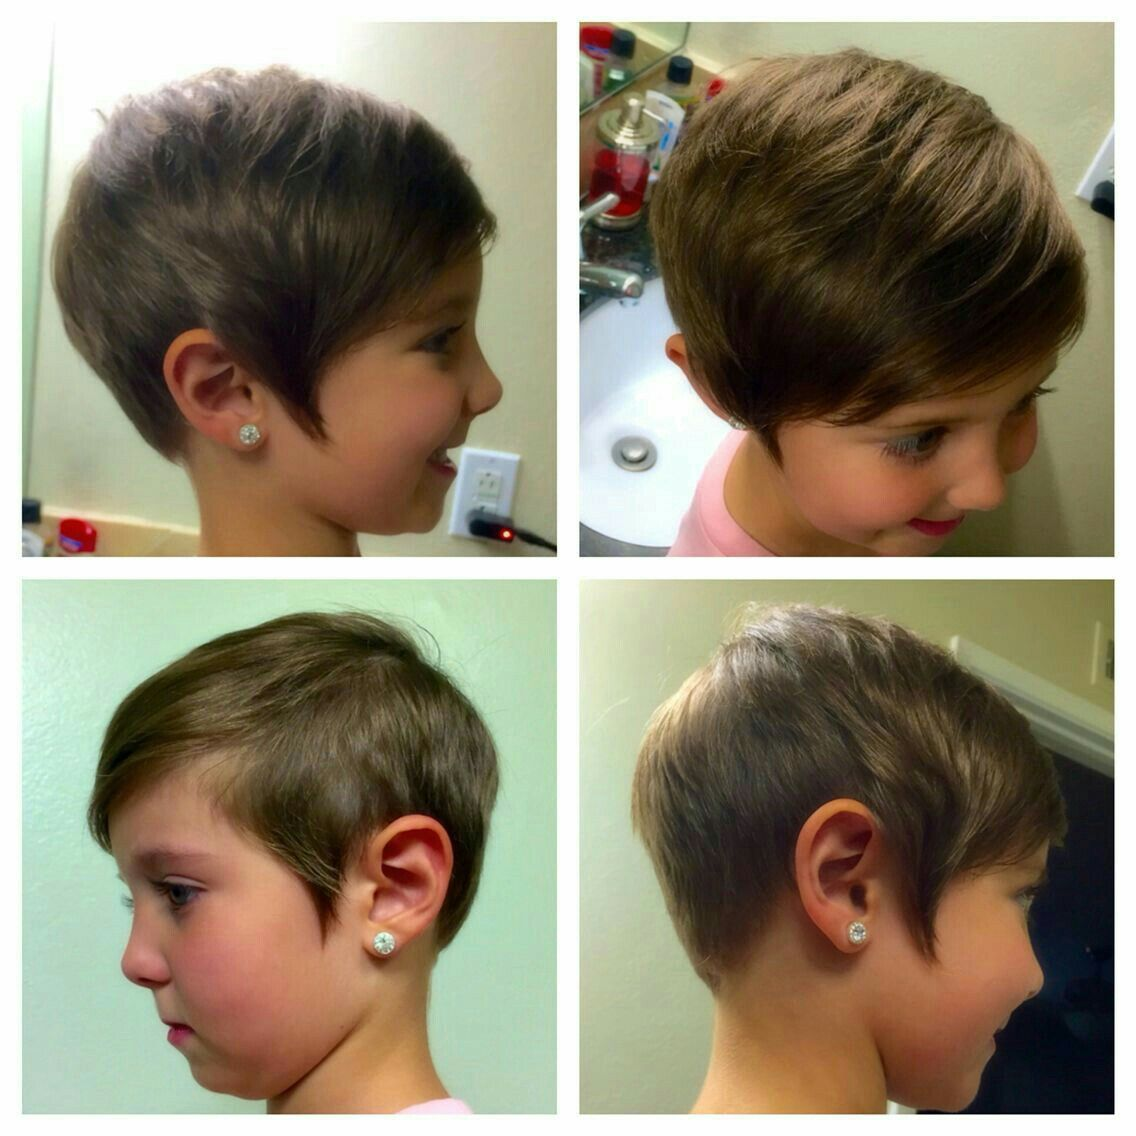 Pin by winnie summers on newborn haircuts pinterest hair cuts